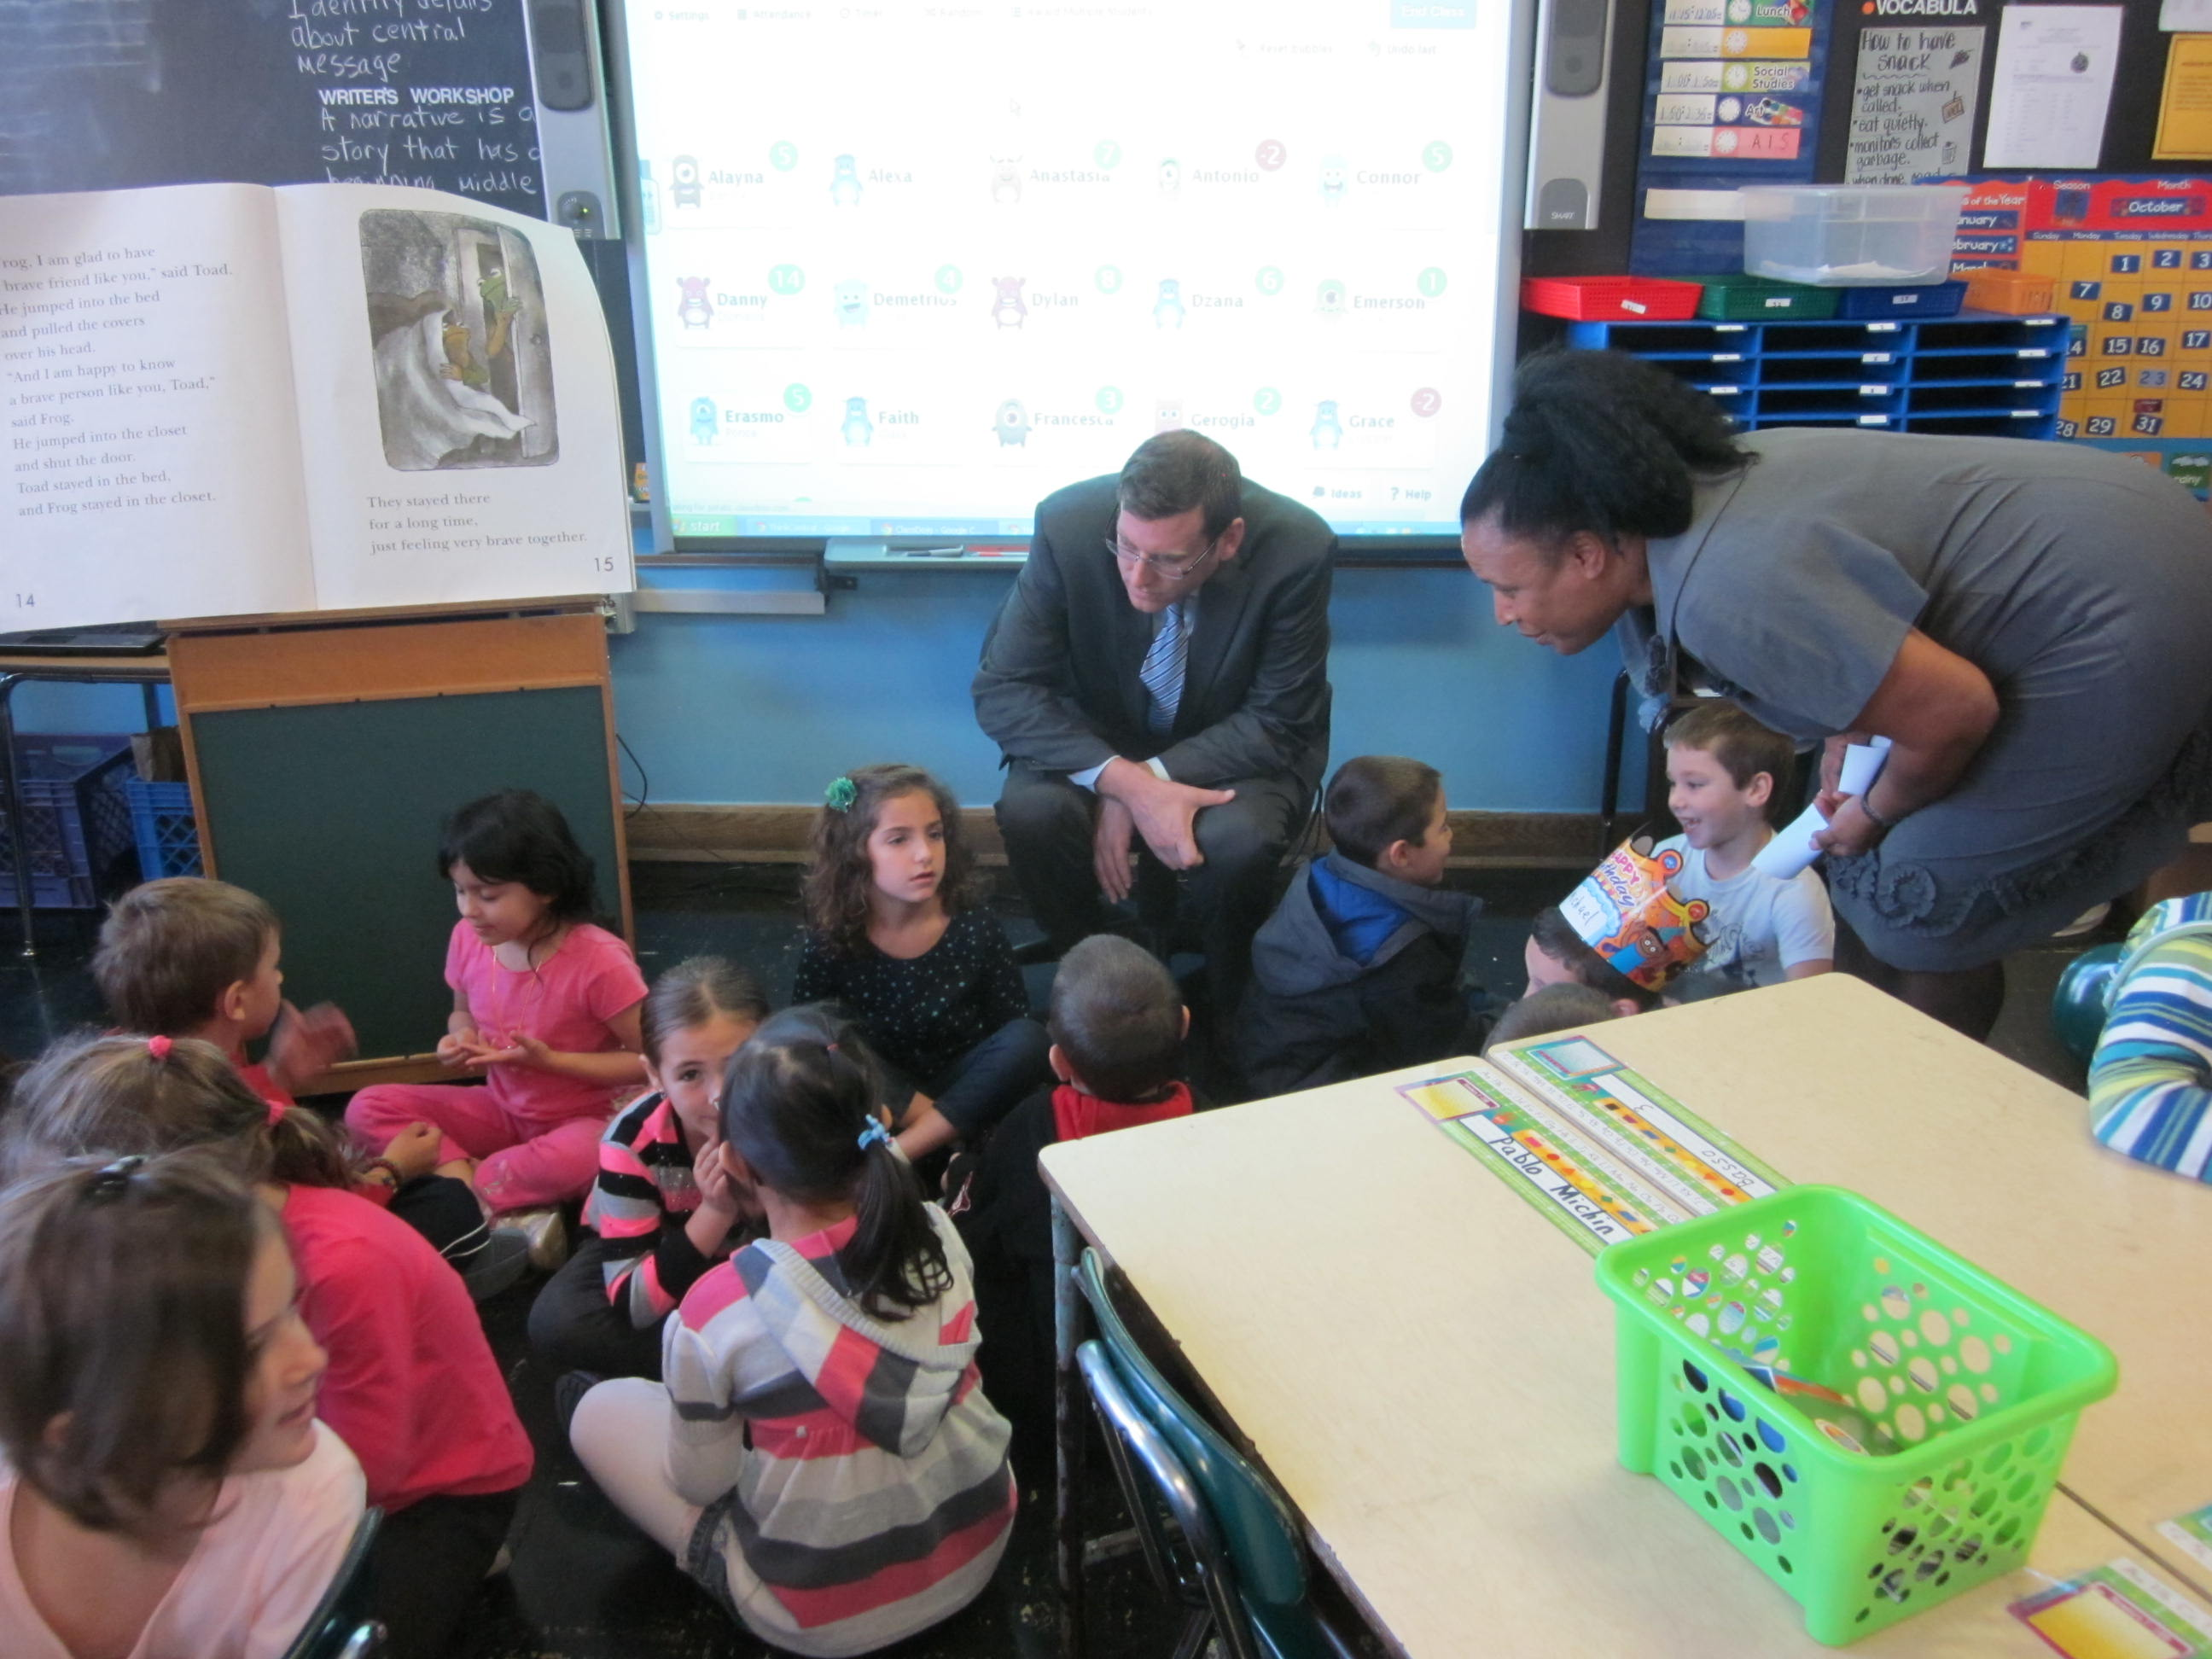 He is pictured here with Principal Joyce Bush visiting a first grade classroom.